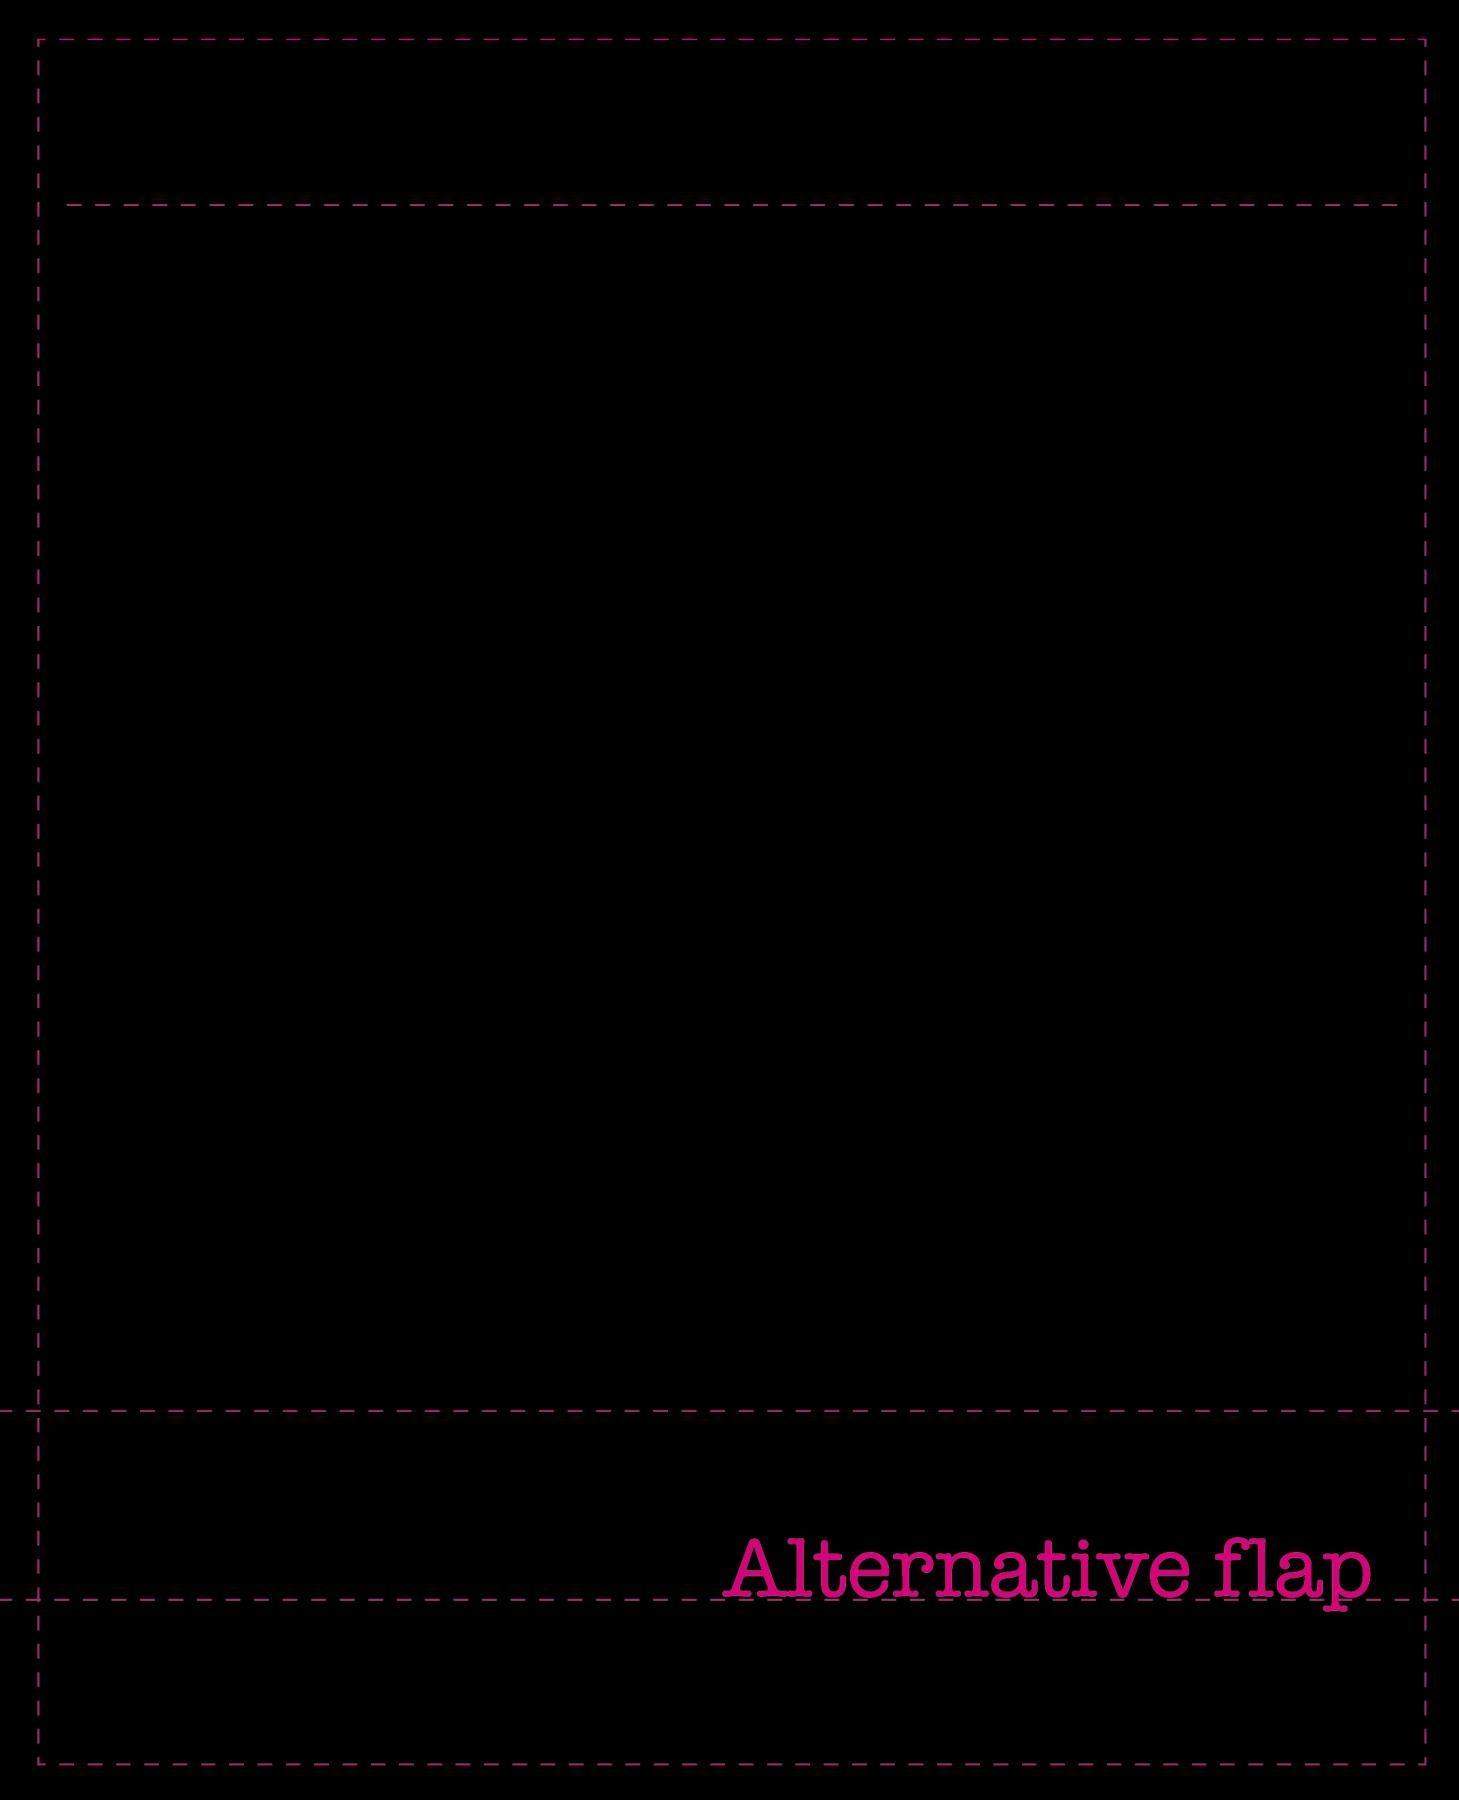 Alternative flap (klein)